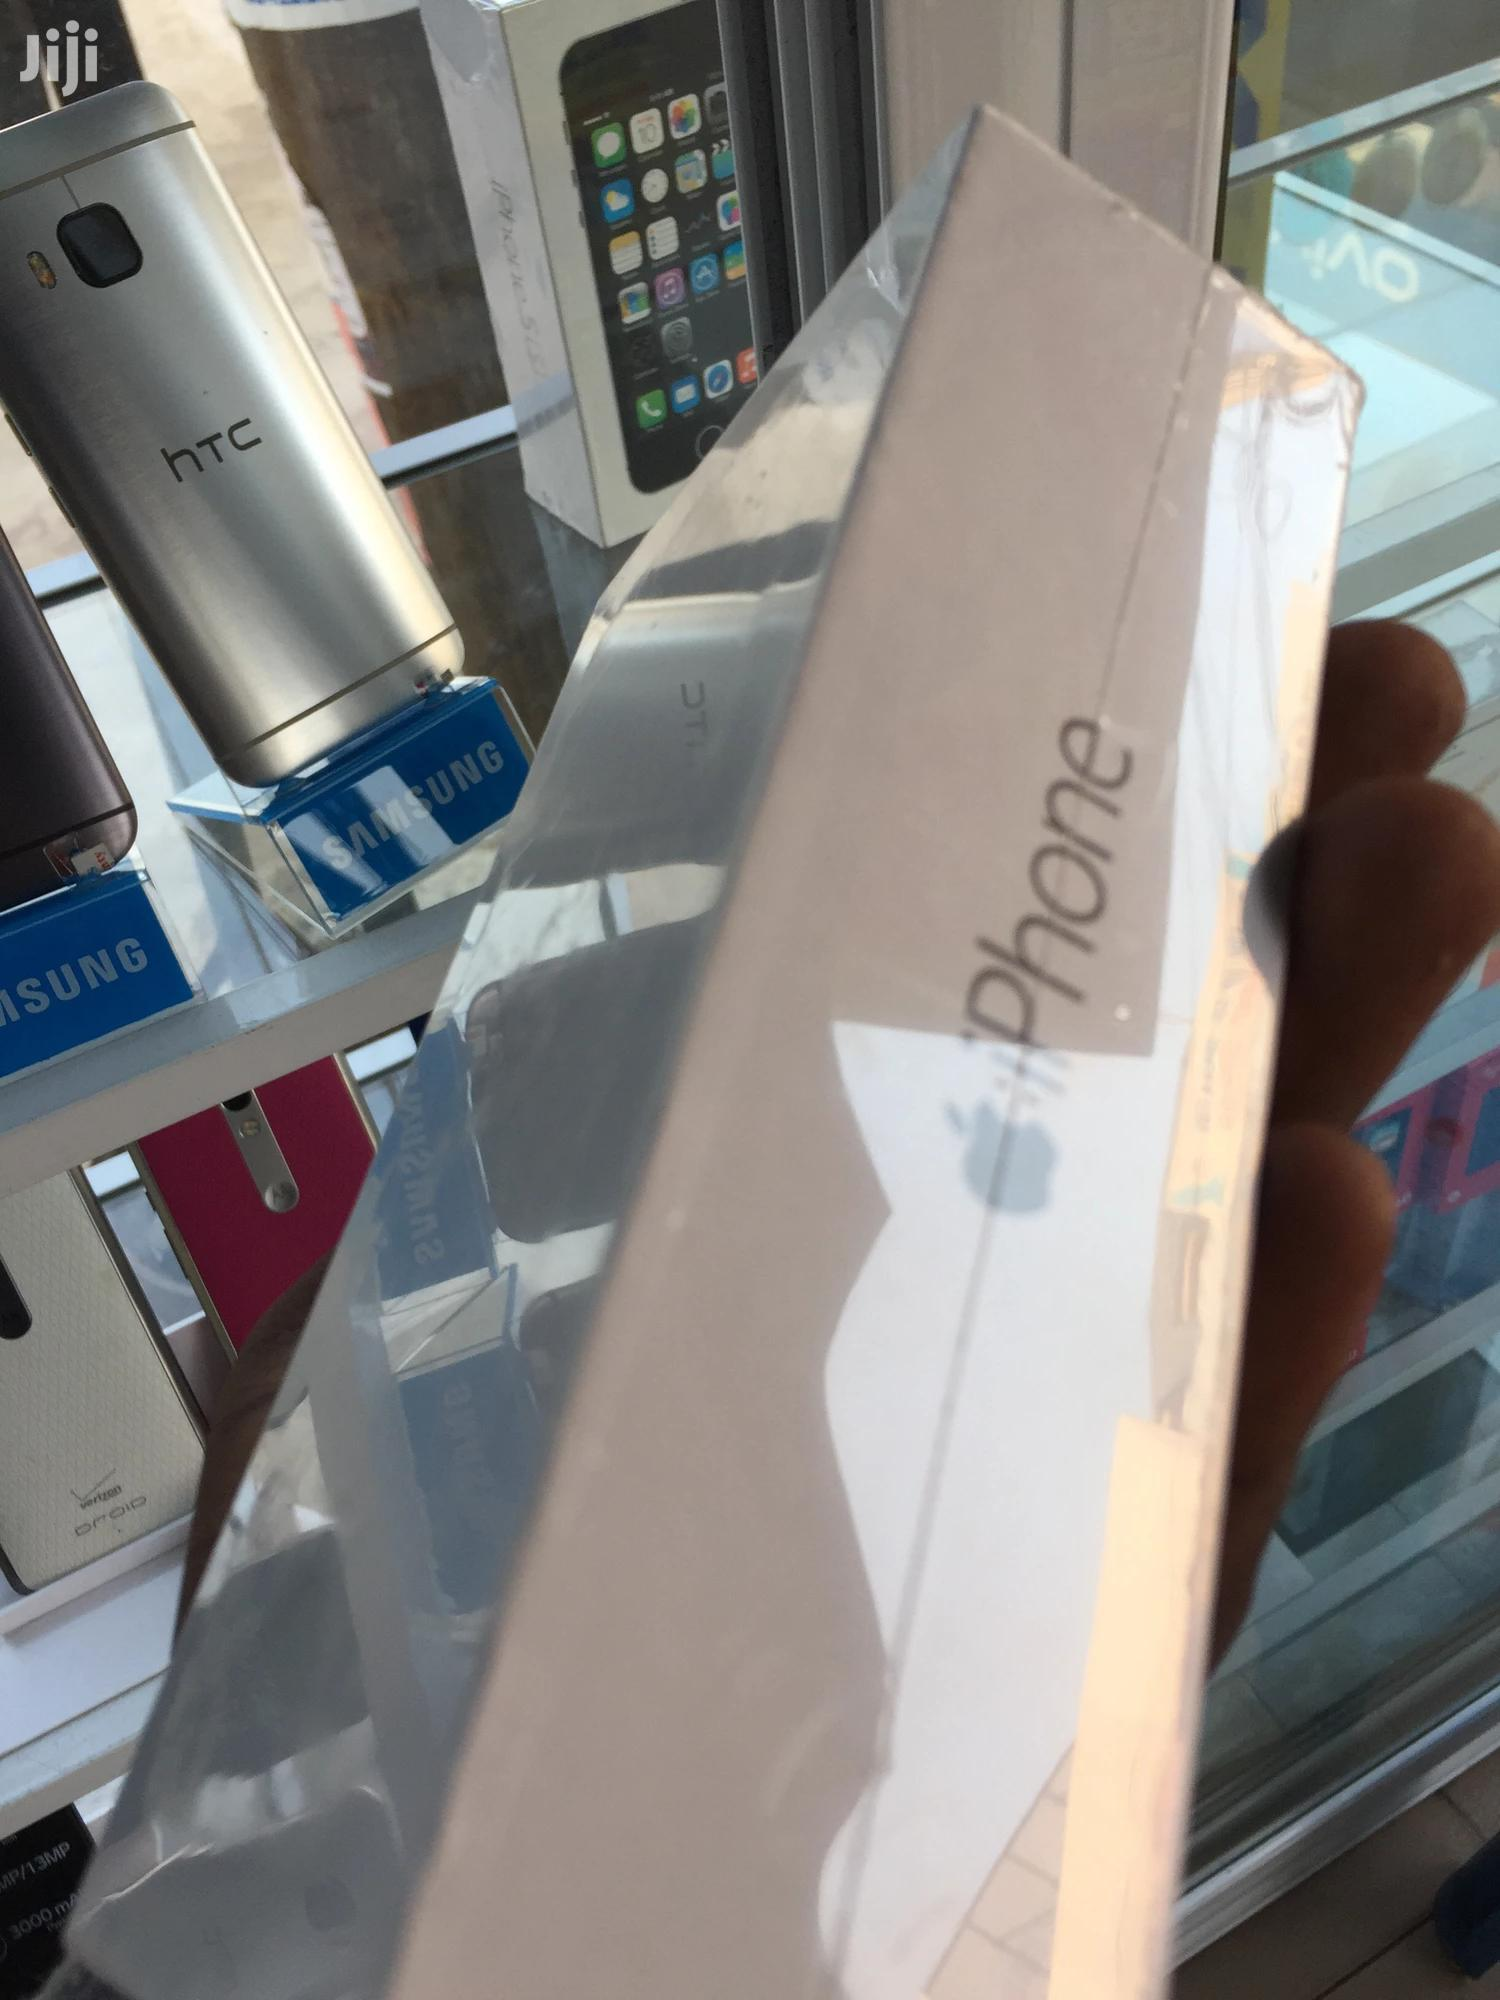 New Apple iPhone 6 32 GB | Mobile Phones for sale in Kokomlemle, Greater Accra, Ghana